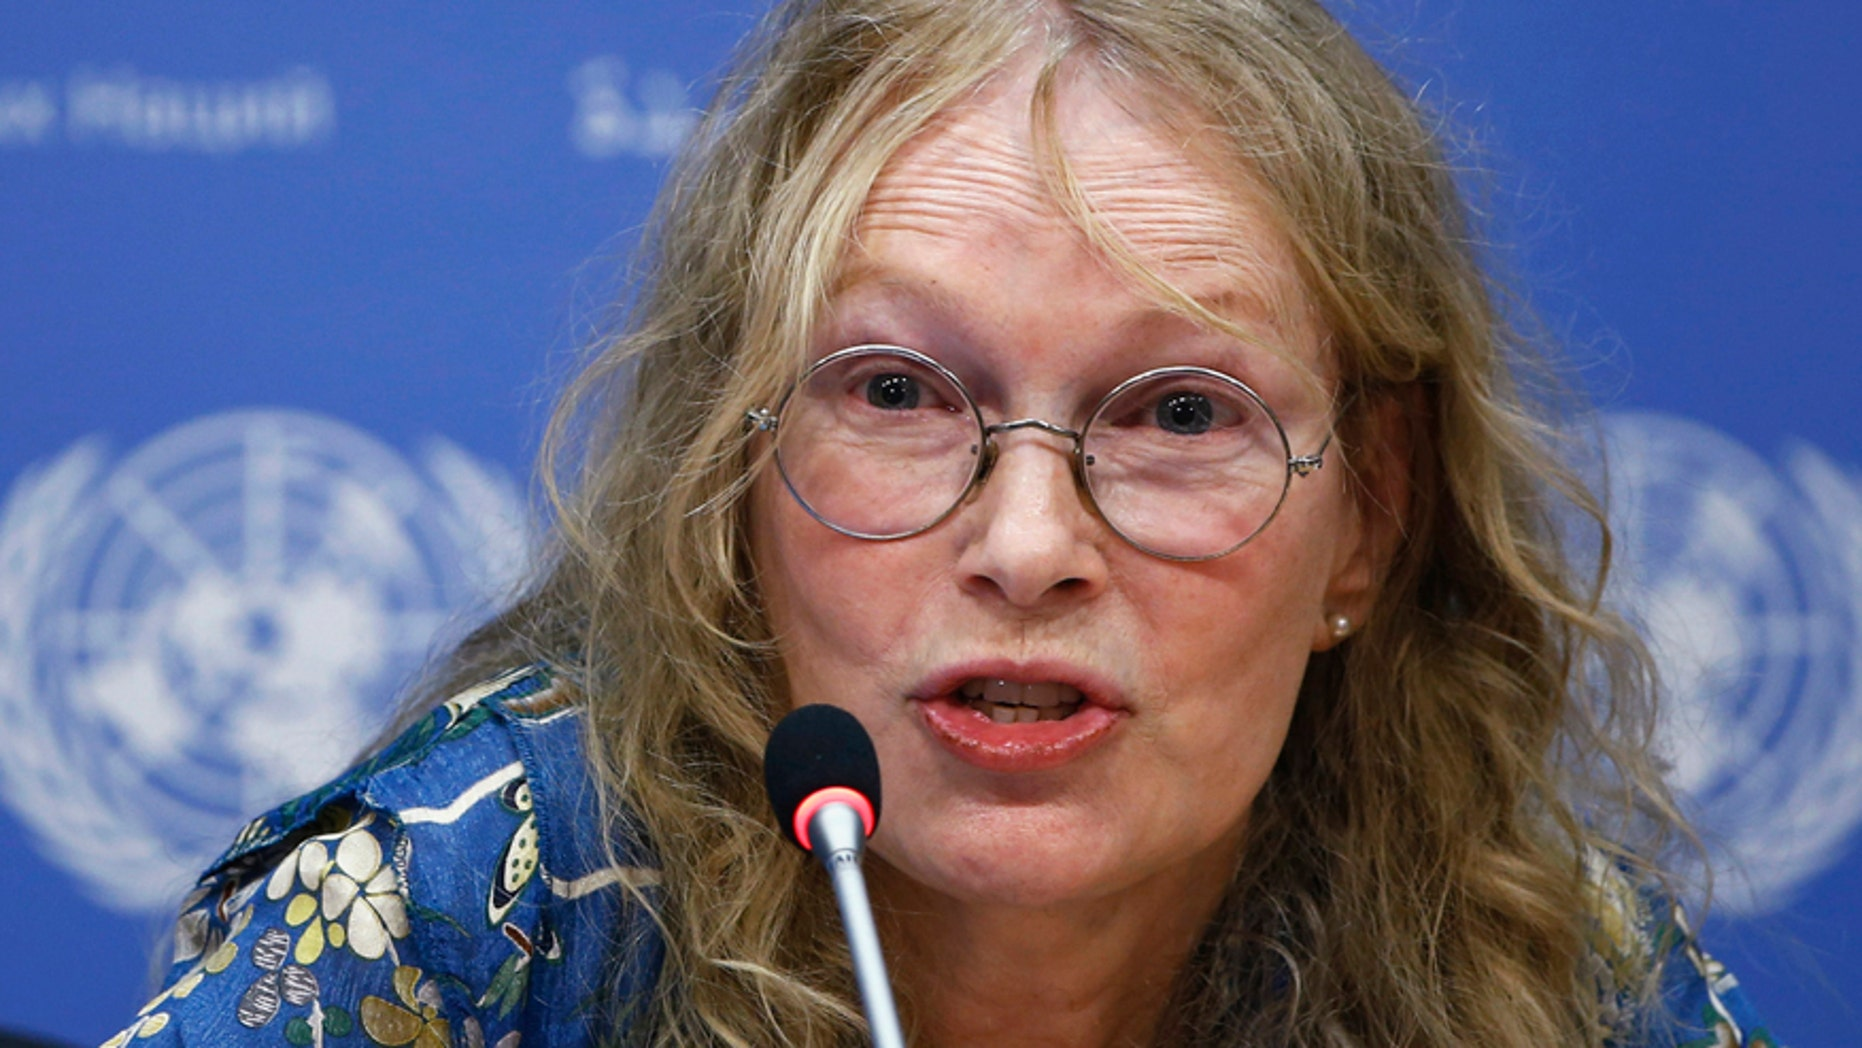 U.S. actress and UNICEF Goodwill Ambassador Mia Farrow speaks to the media about her visit to the Central African Republic at the United Nations headquarters in New York, July 22, 2014.